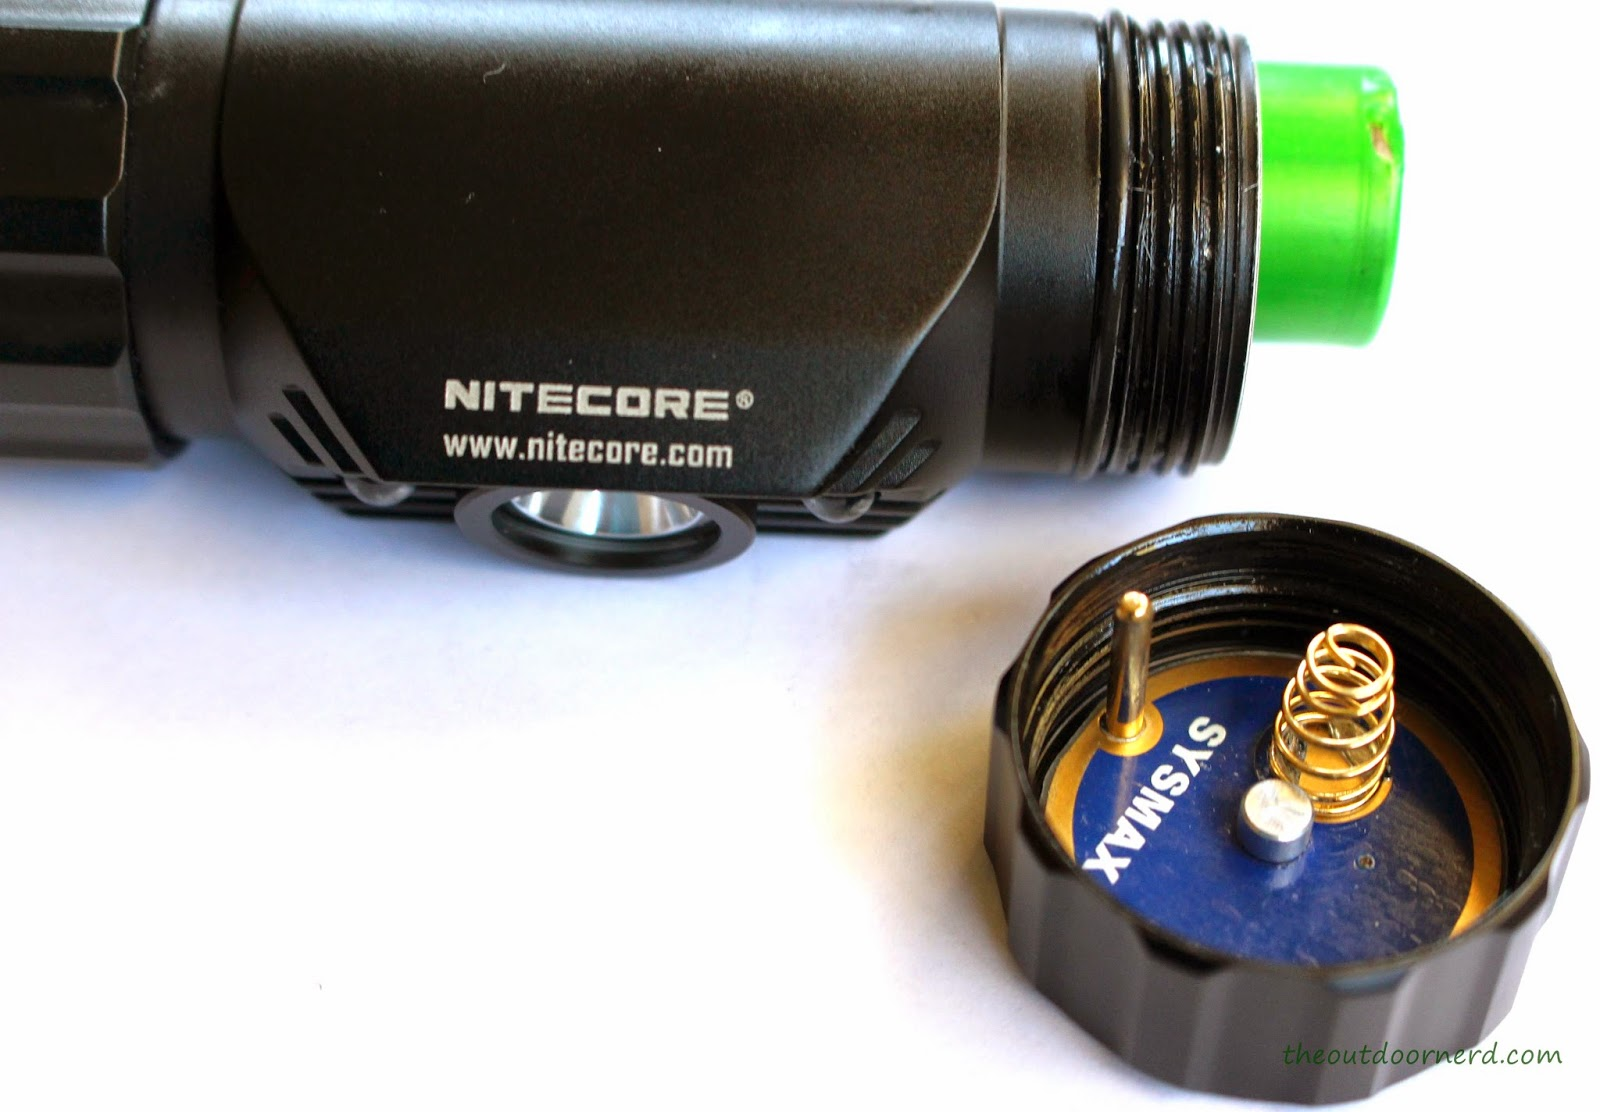 Nitecore HC50 Headlamp With Cap Off